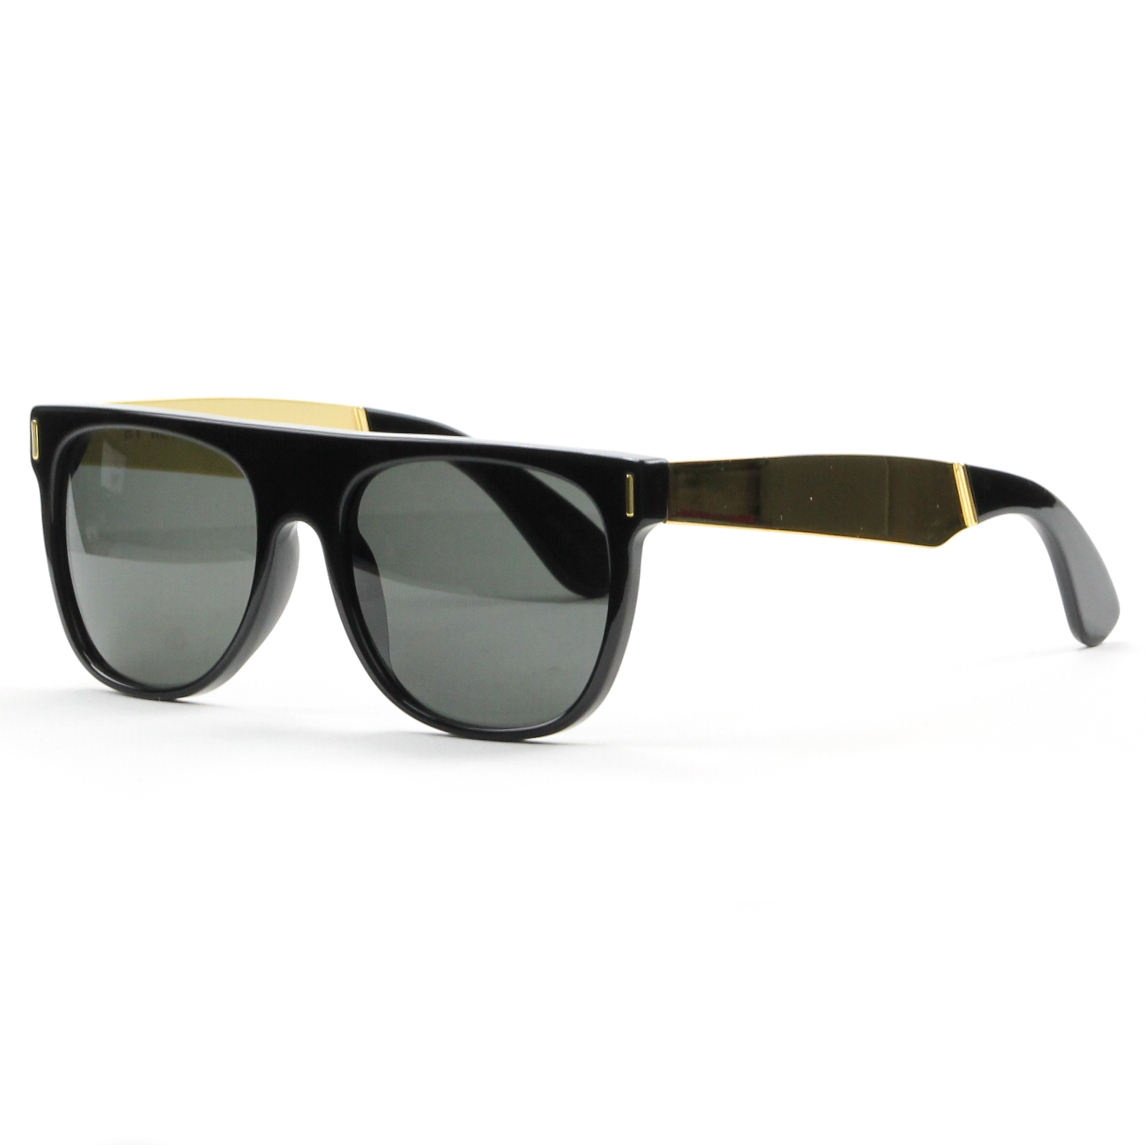 RETROSUPERFUTURE Super Flat Top Sunglasses Black Gold ...